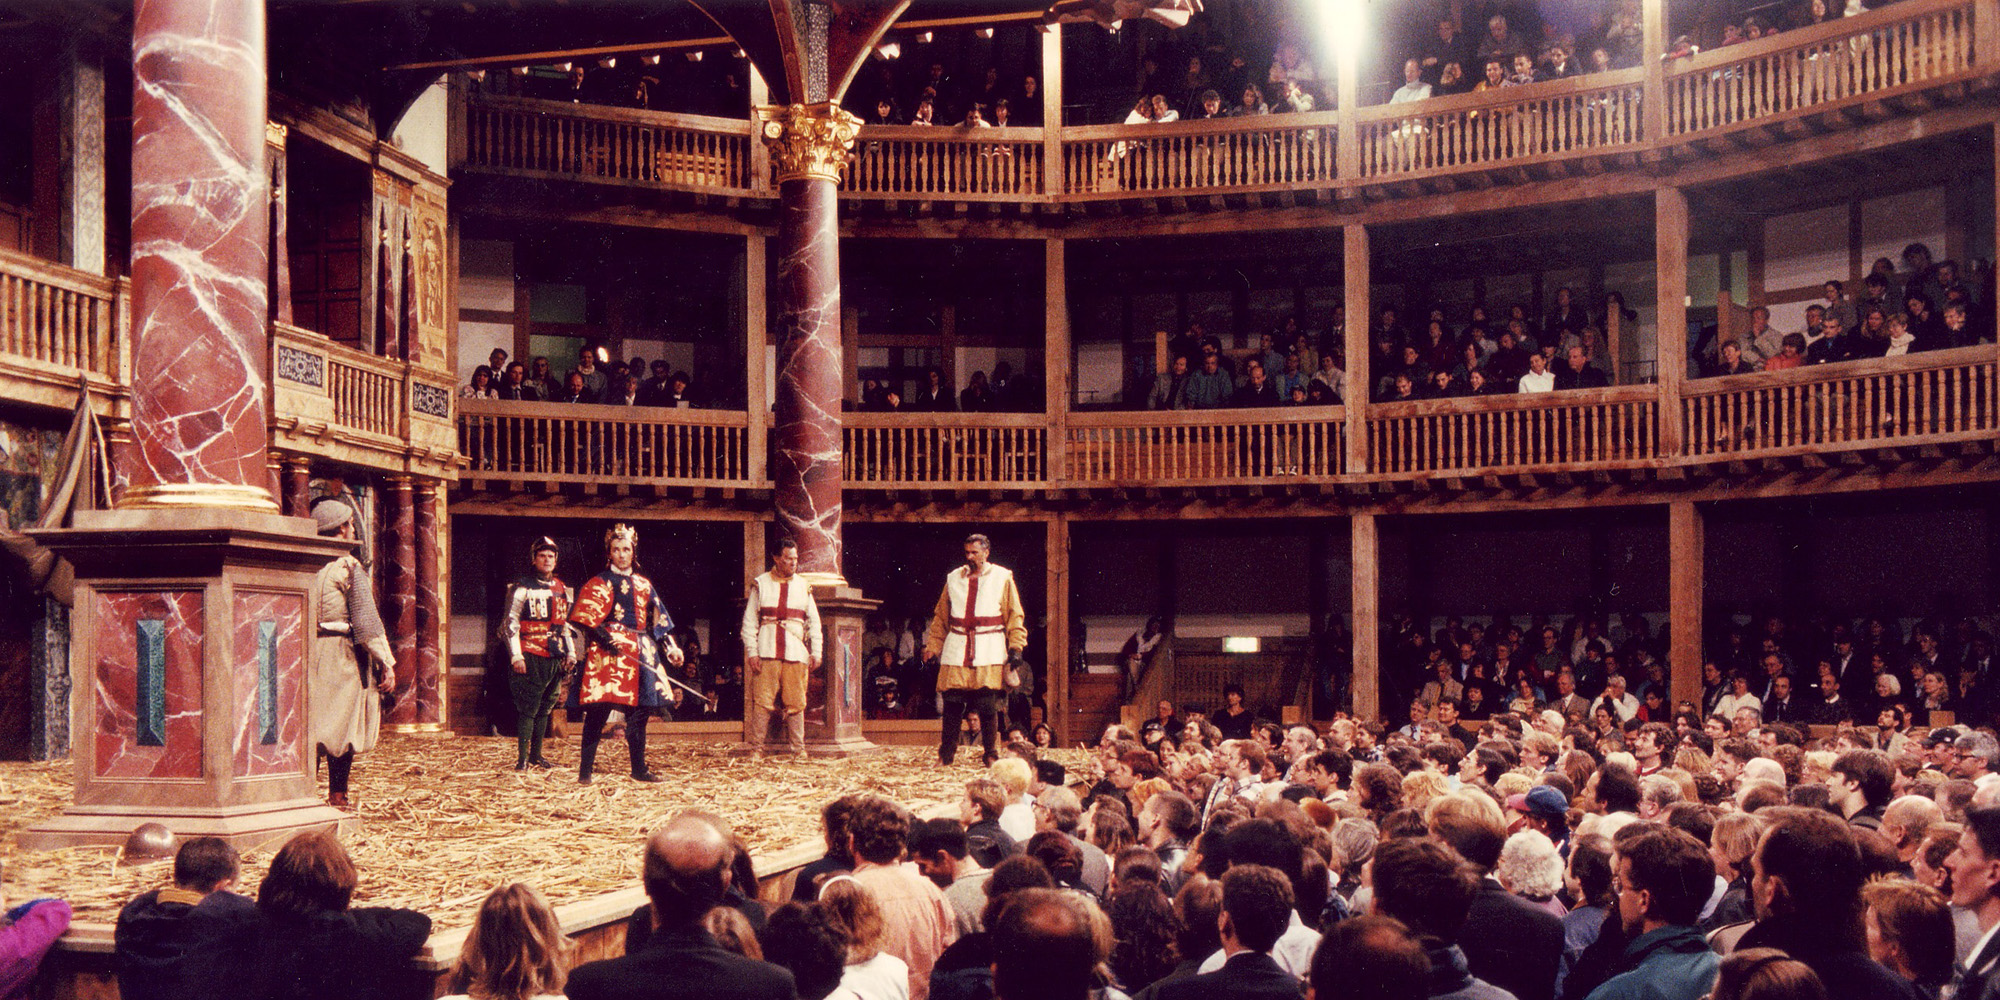 A large crowd of audience members stand watching a play in a circular timber structure.